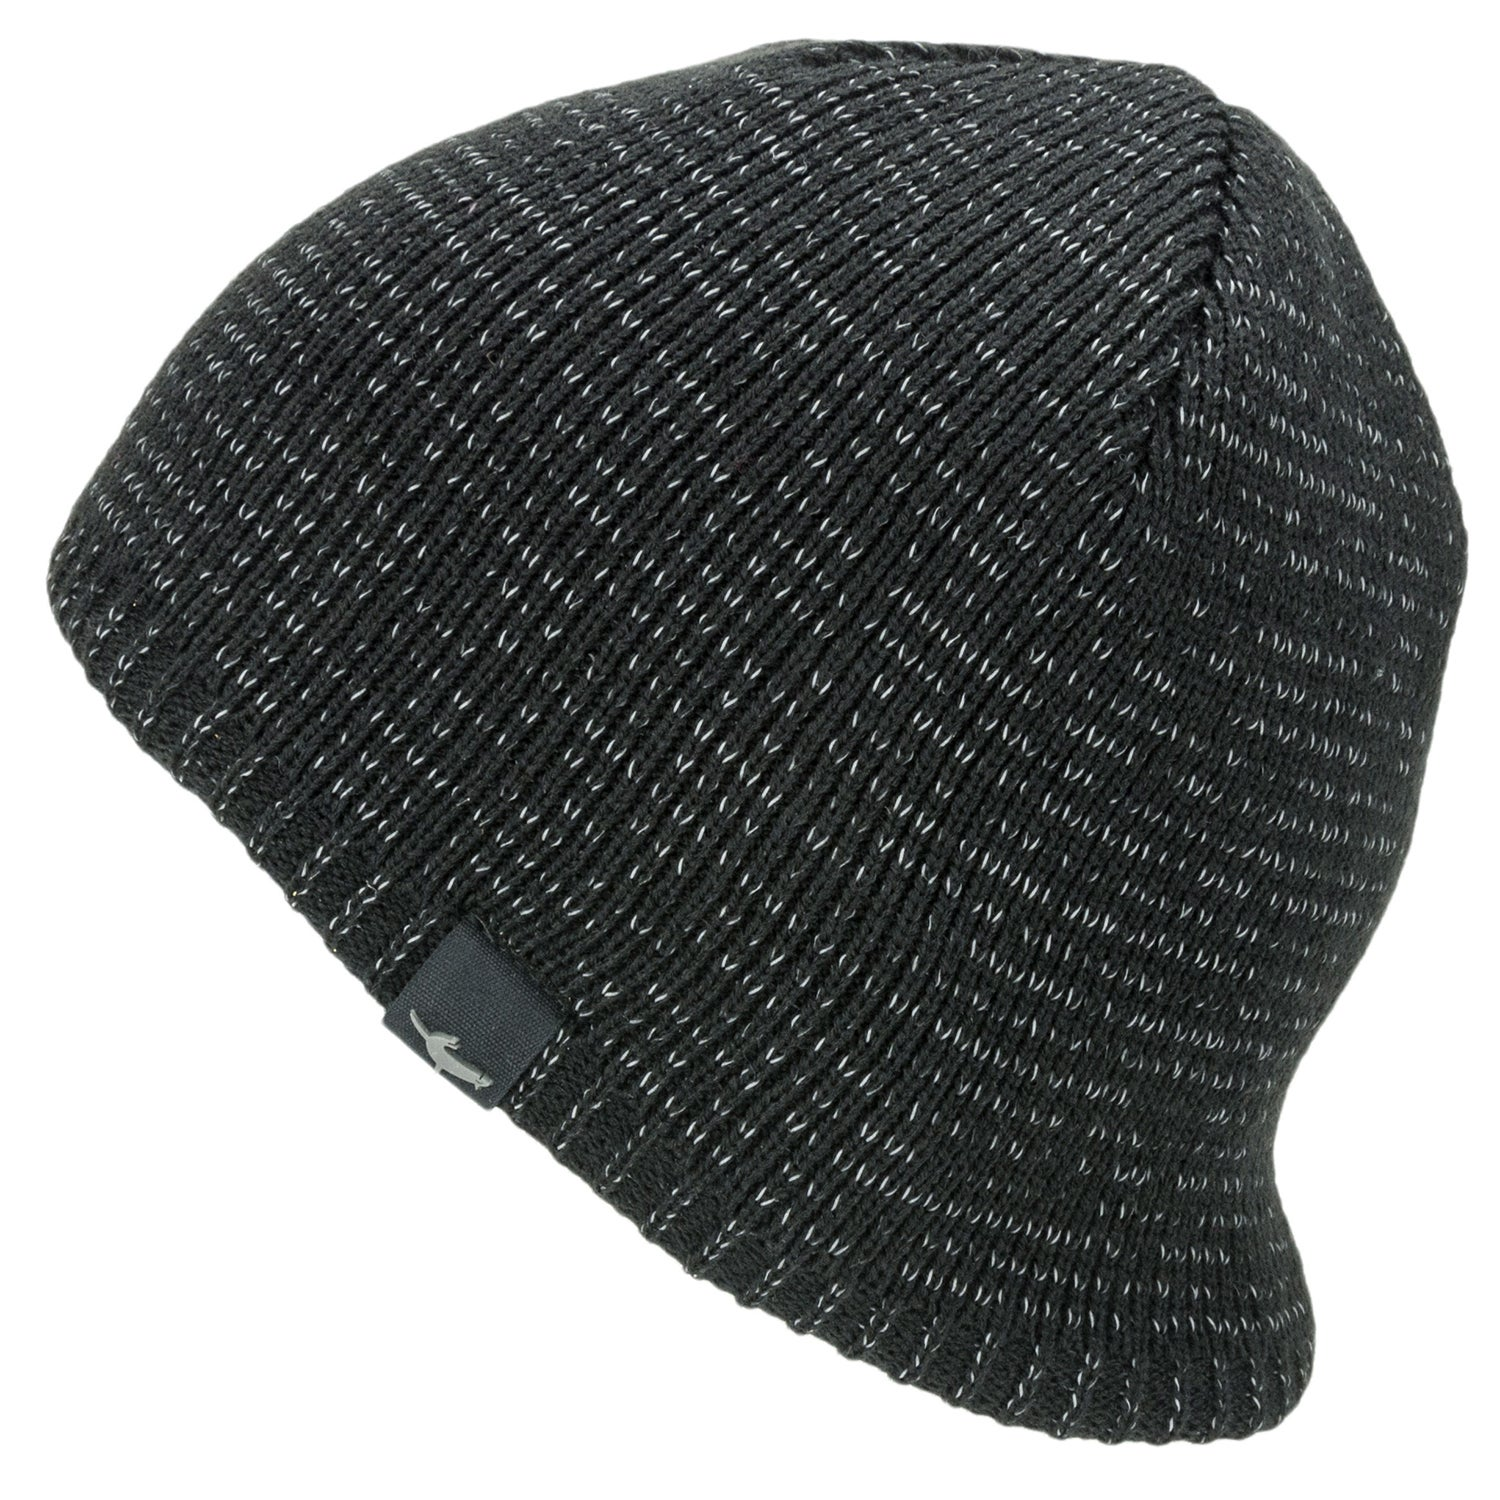 SealSkinz Unisex Child Waterproof Childrens Beanie